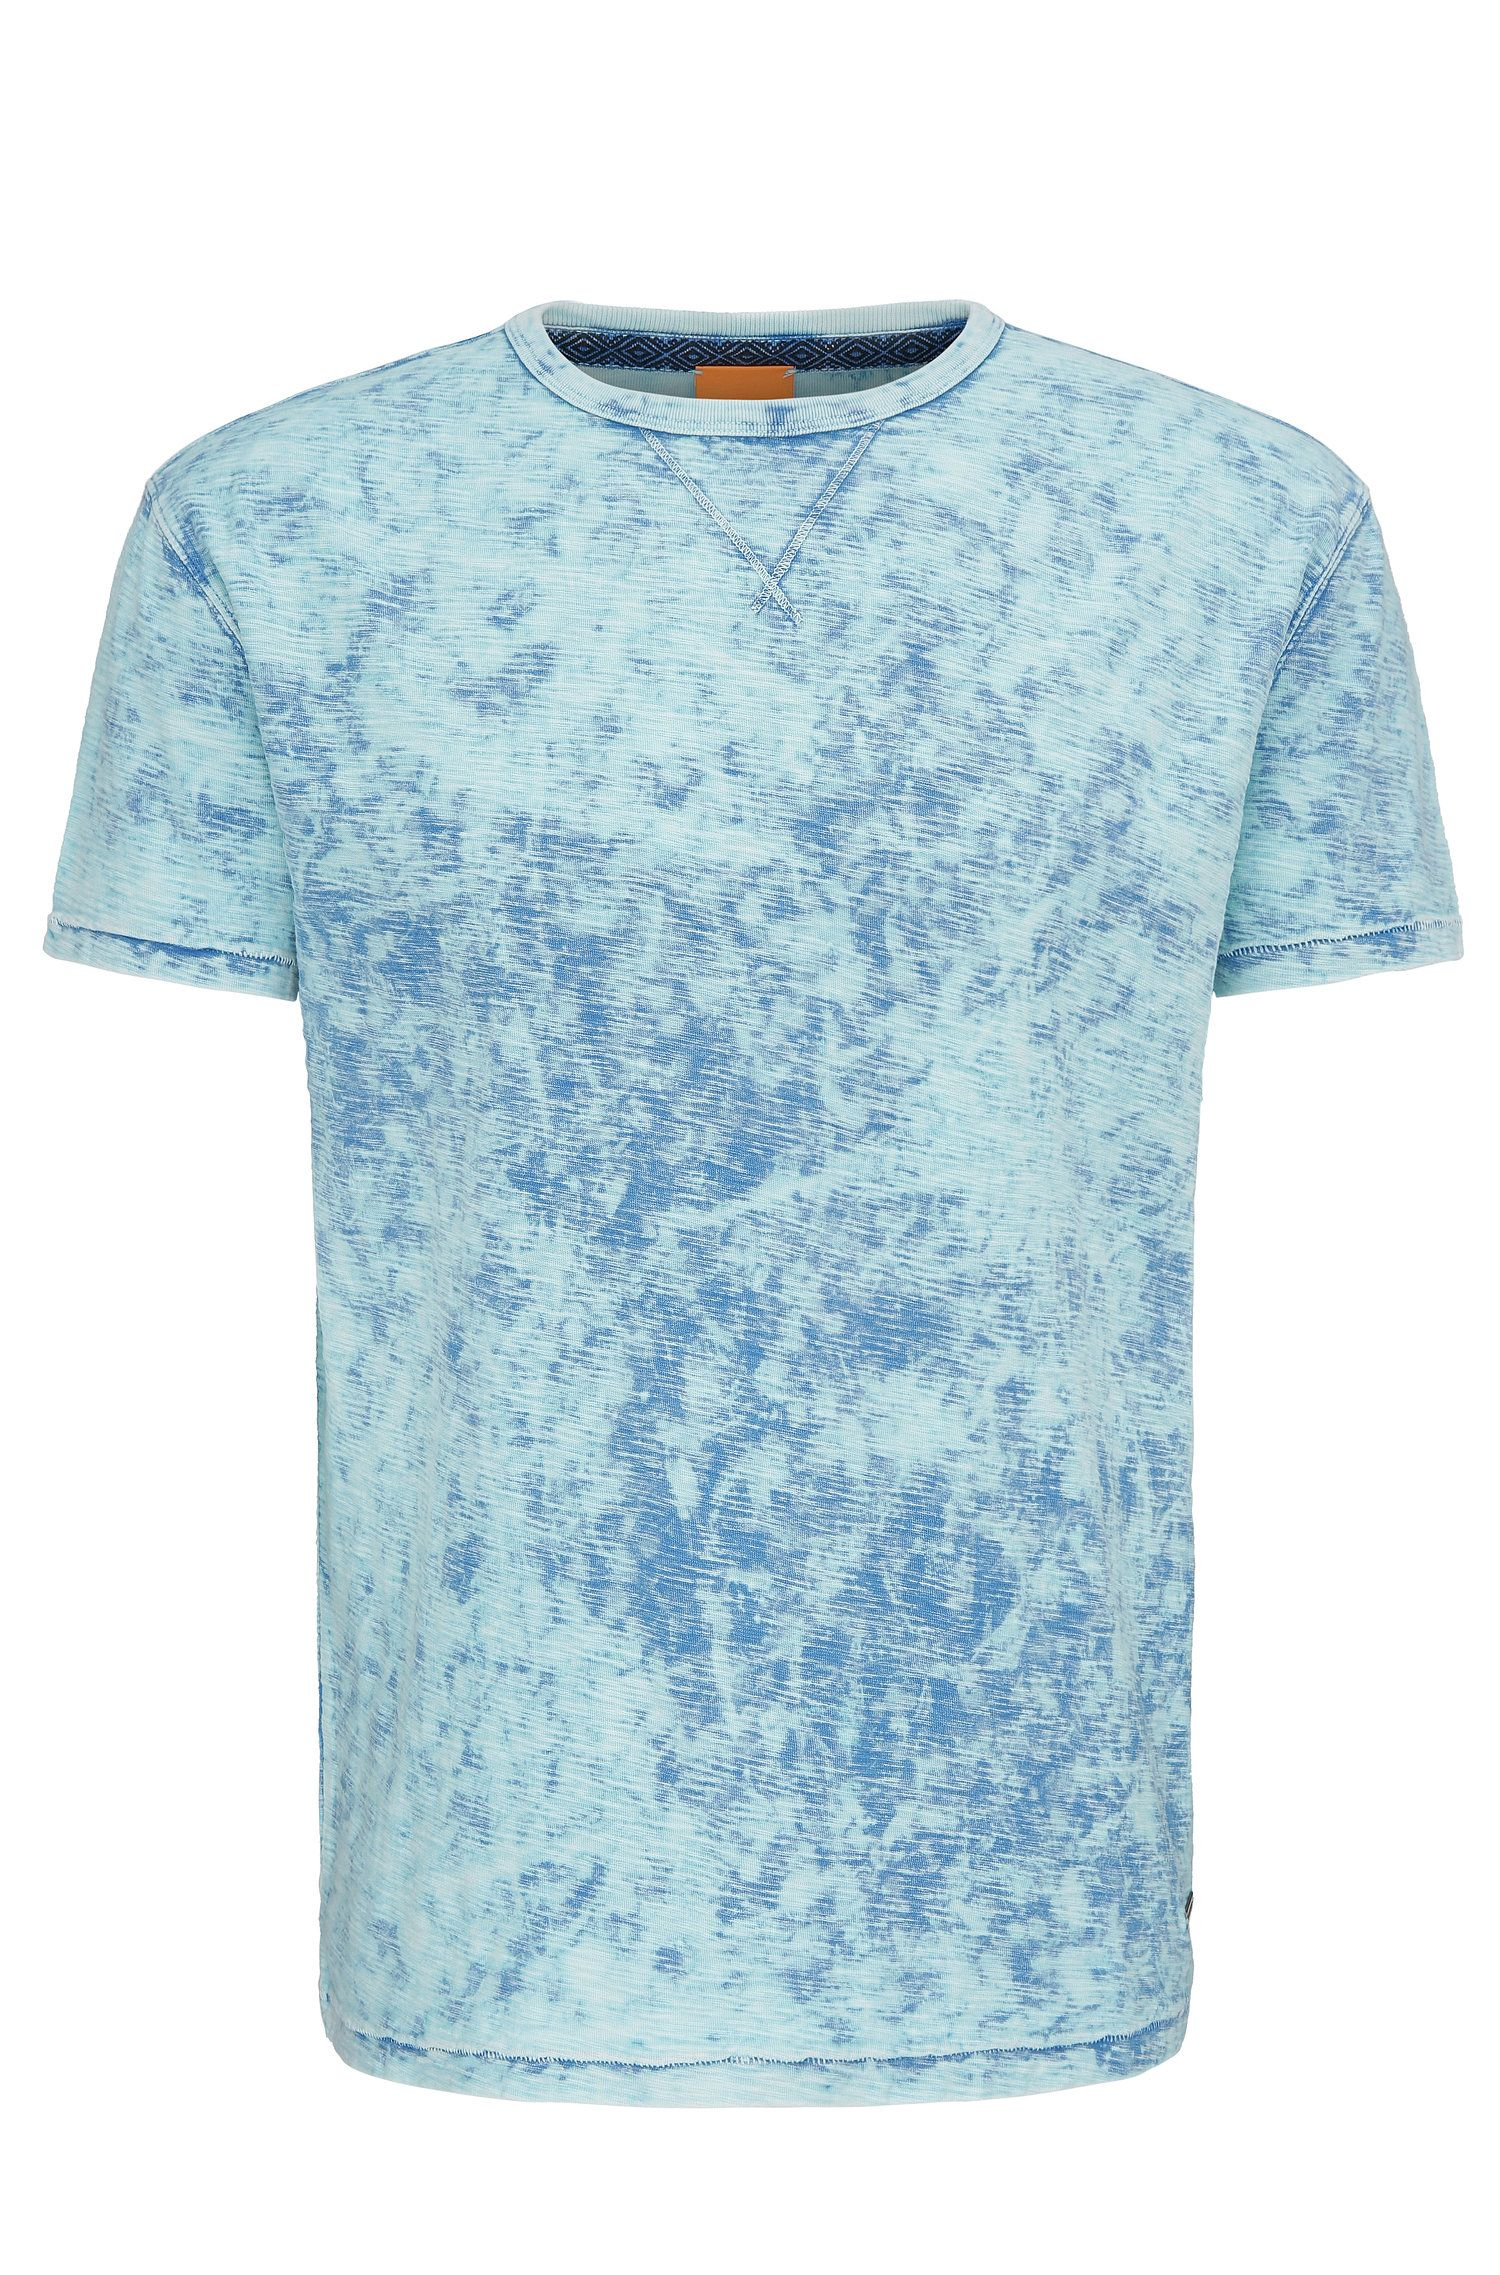 'Tay' | Cotton Patterned T-Shirt